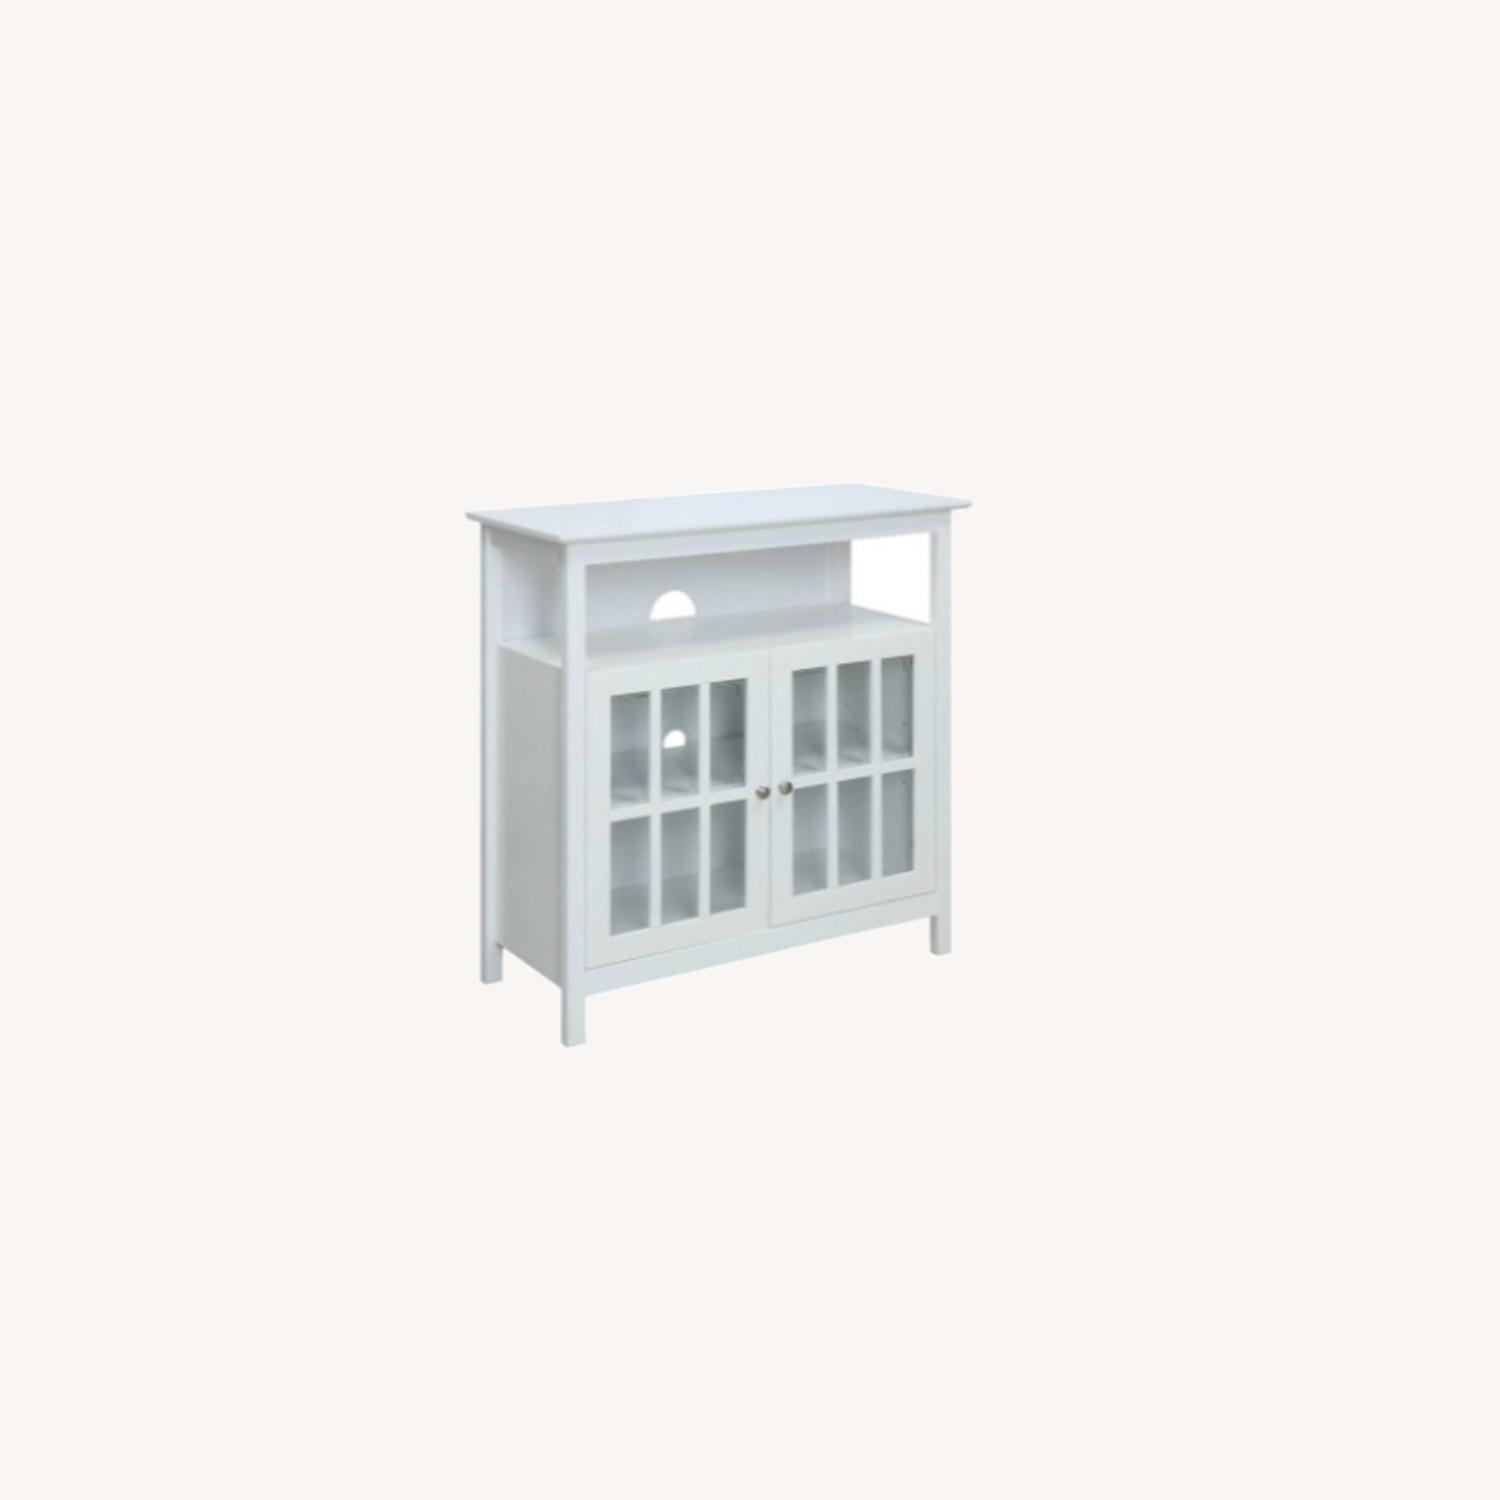 Convenience Concepts TV Stand with Storage Space - image-0